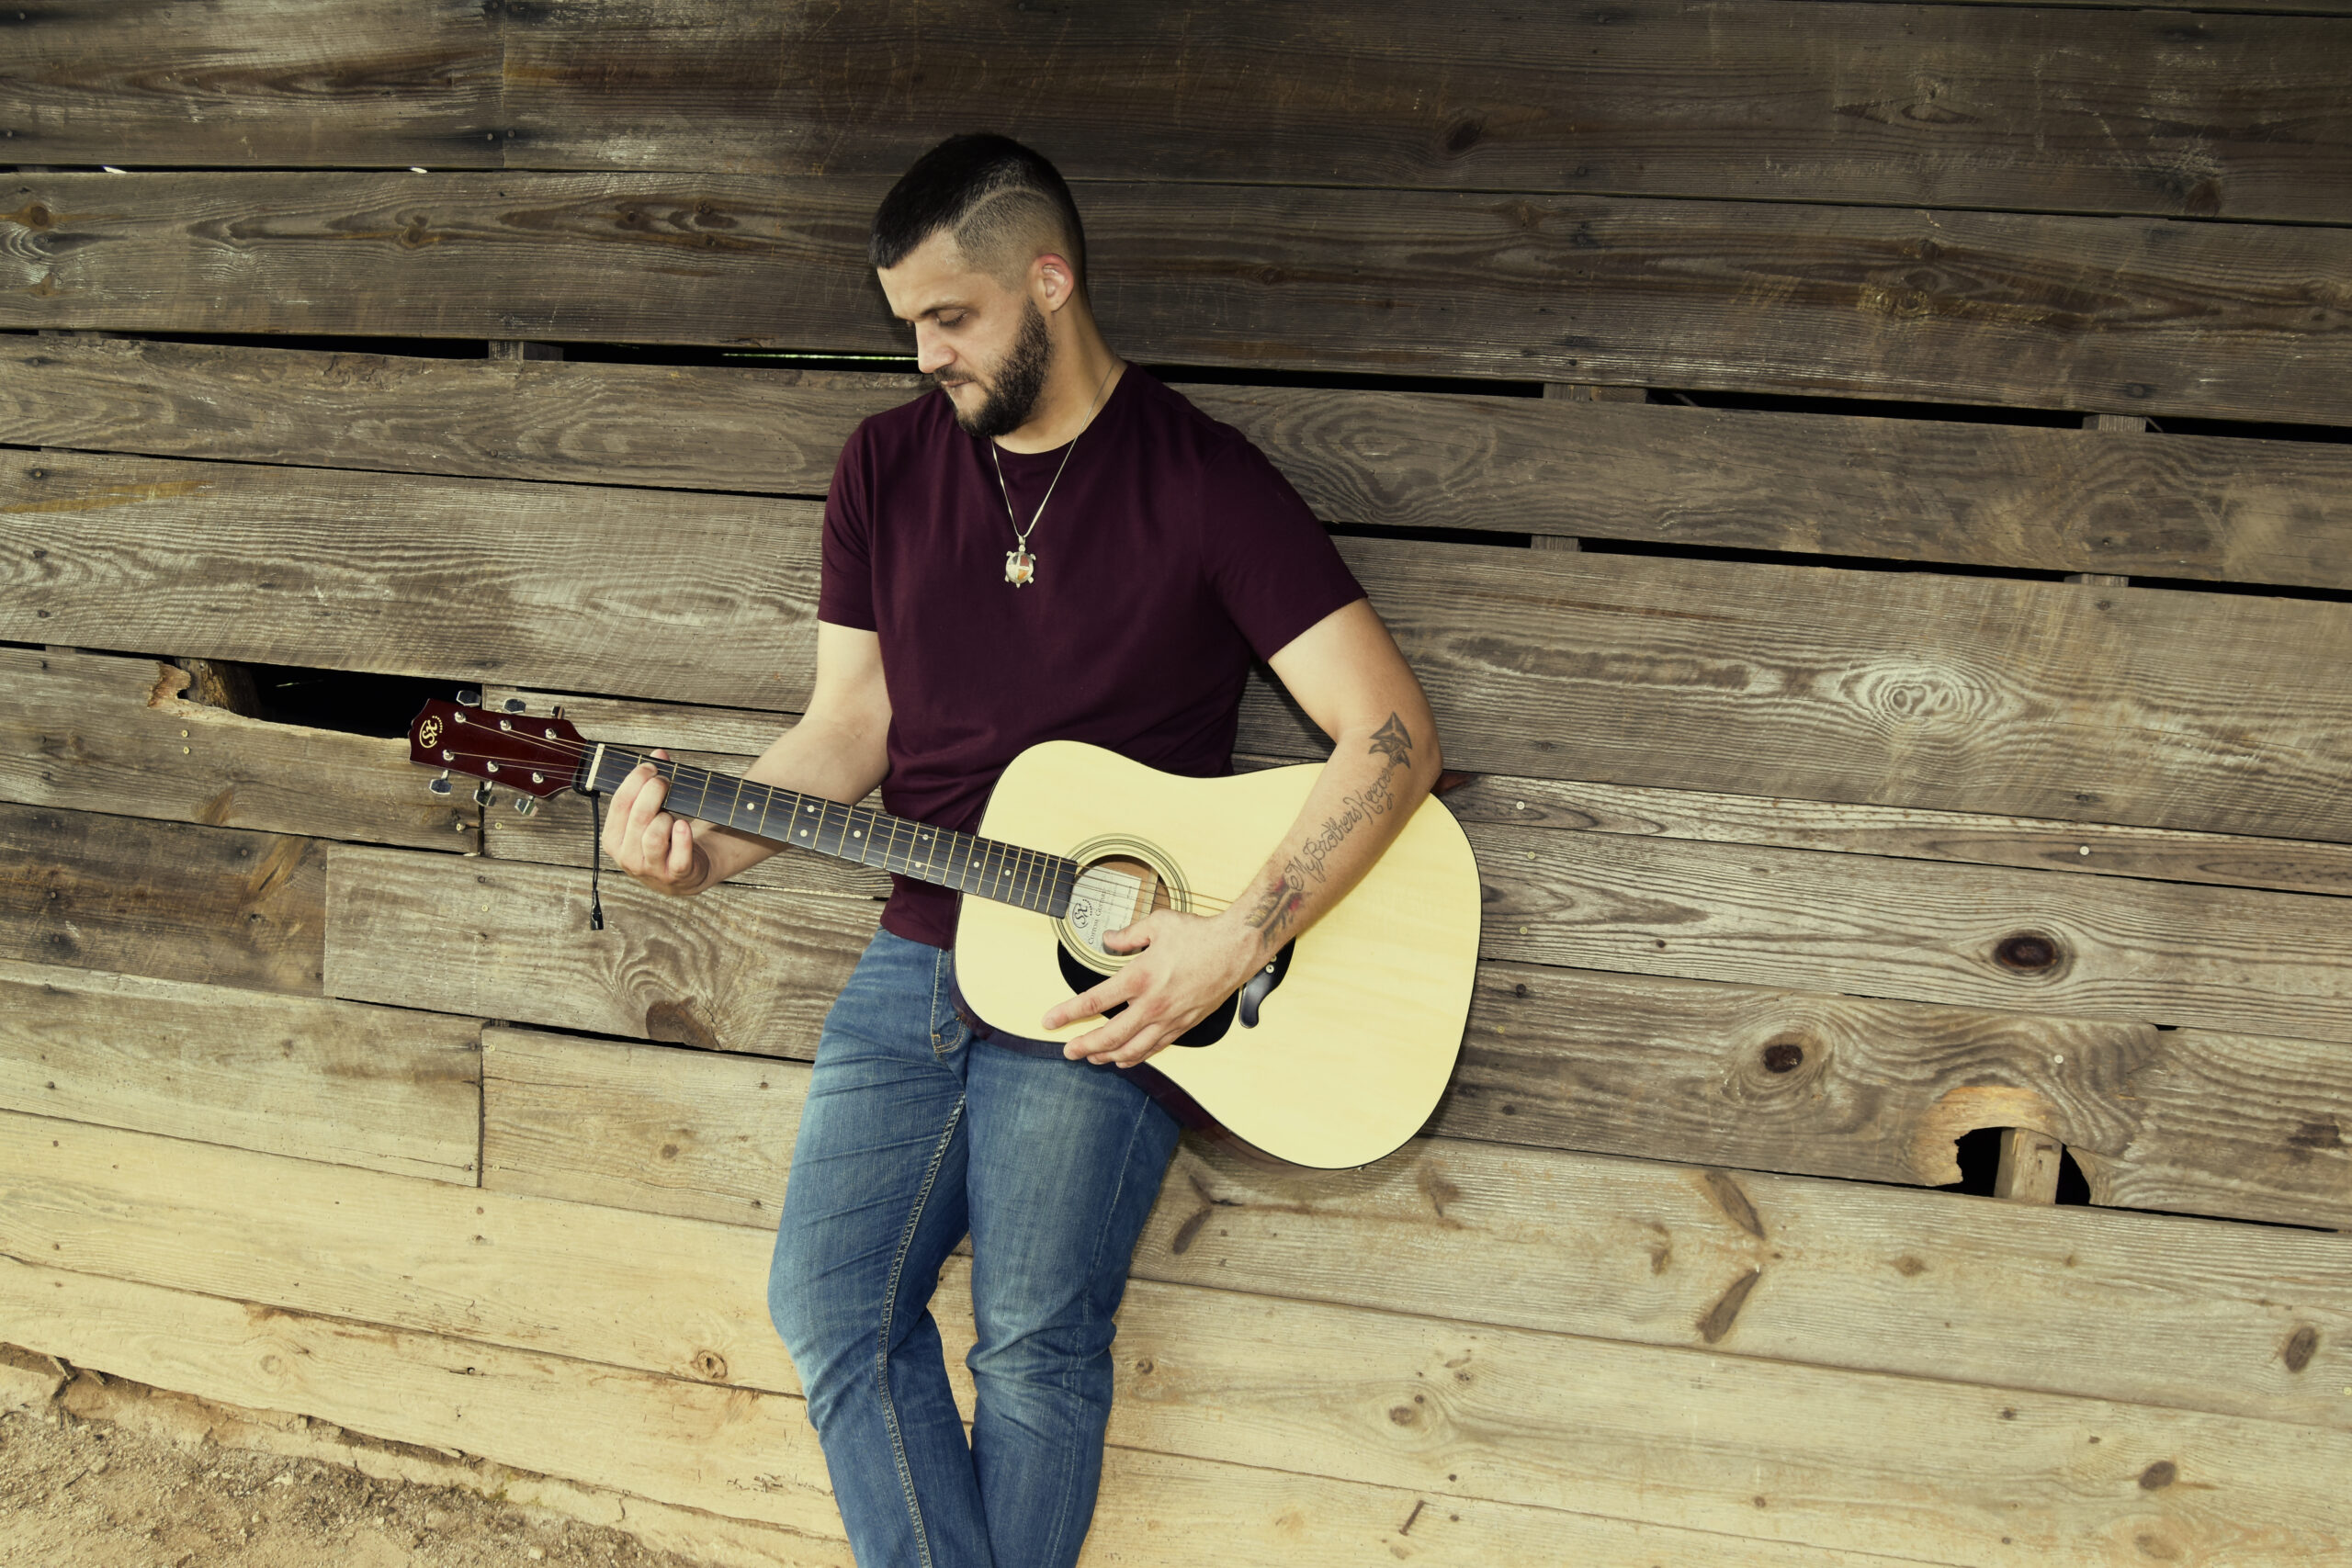 Interview: Country Soul Singer Roger Dale Is Fueled By His Passion For Music